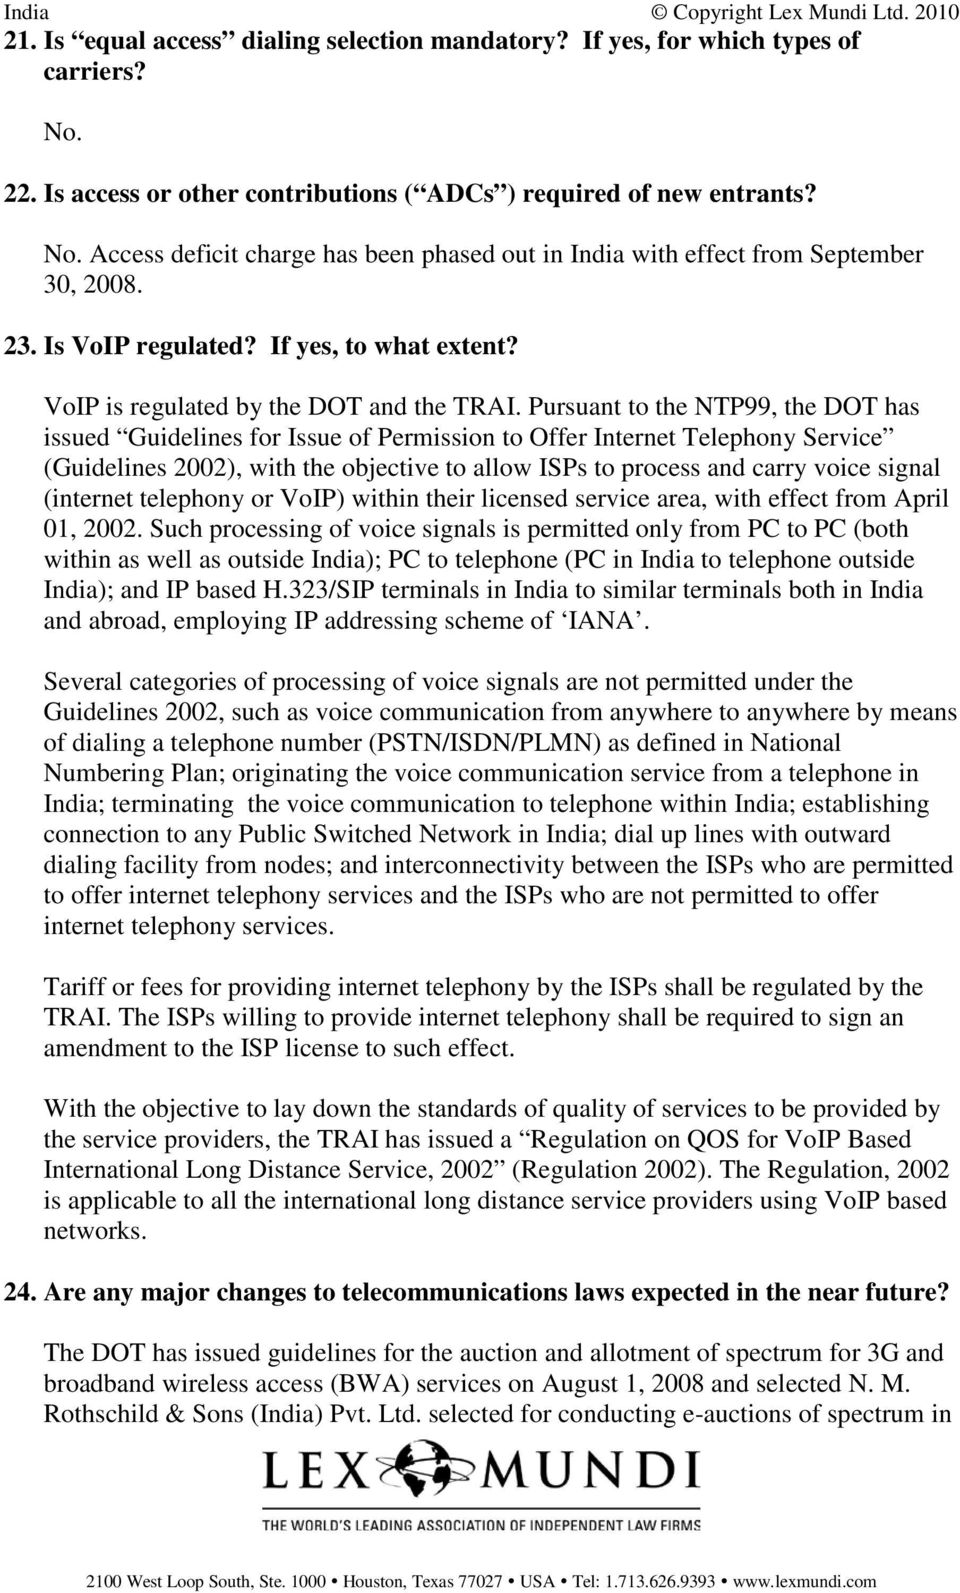 Pursuant to the NTP99, the DOT has issued Guidelines for Issue of Permission to Offer Internet Telephony Service (Guidelines 2002), with the objective to allow ISPs to process and carry voice signal